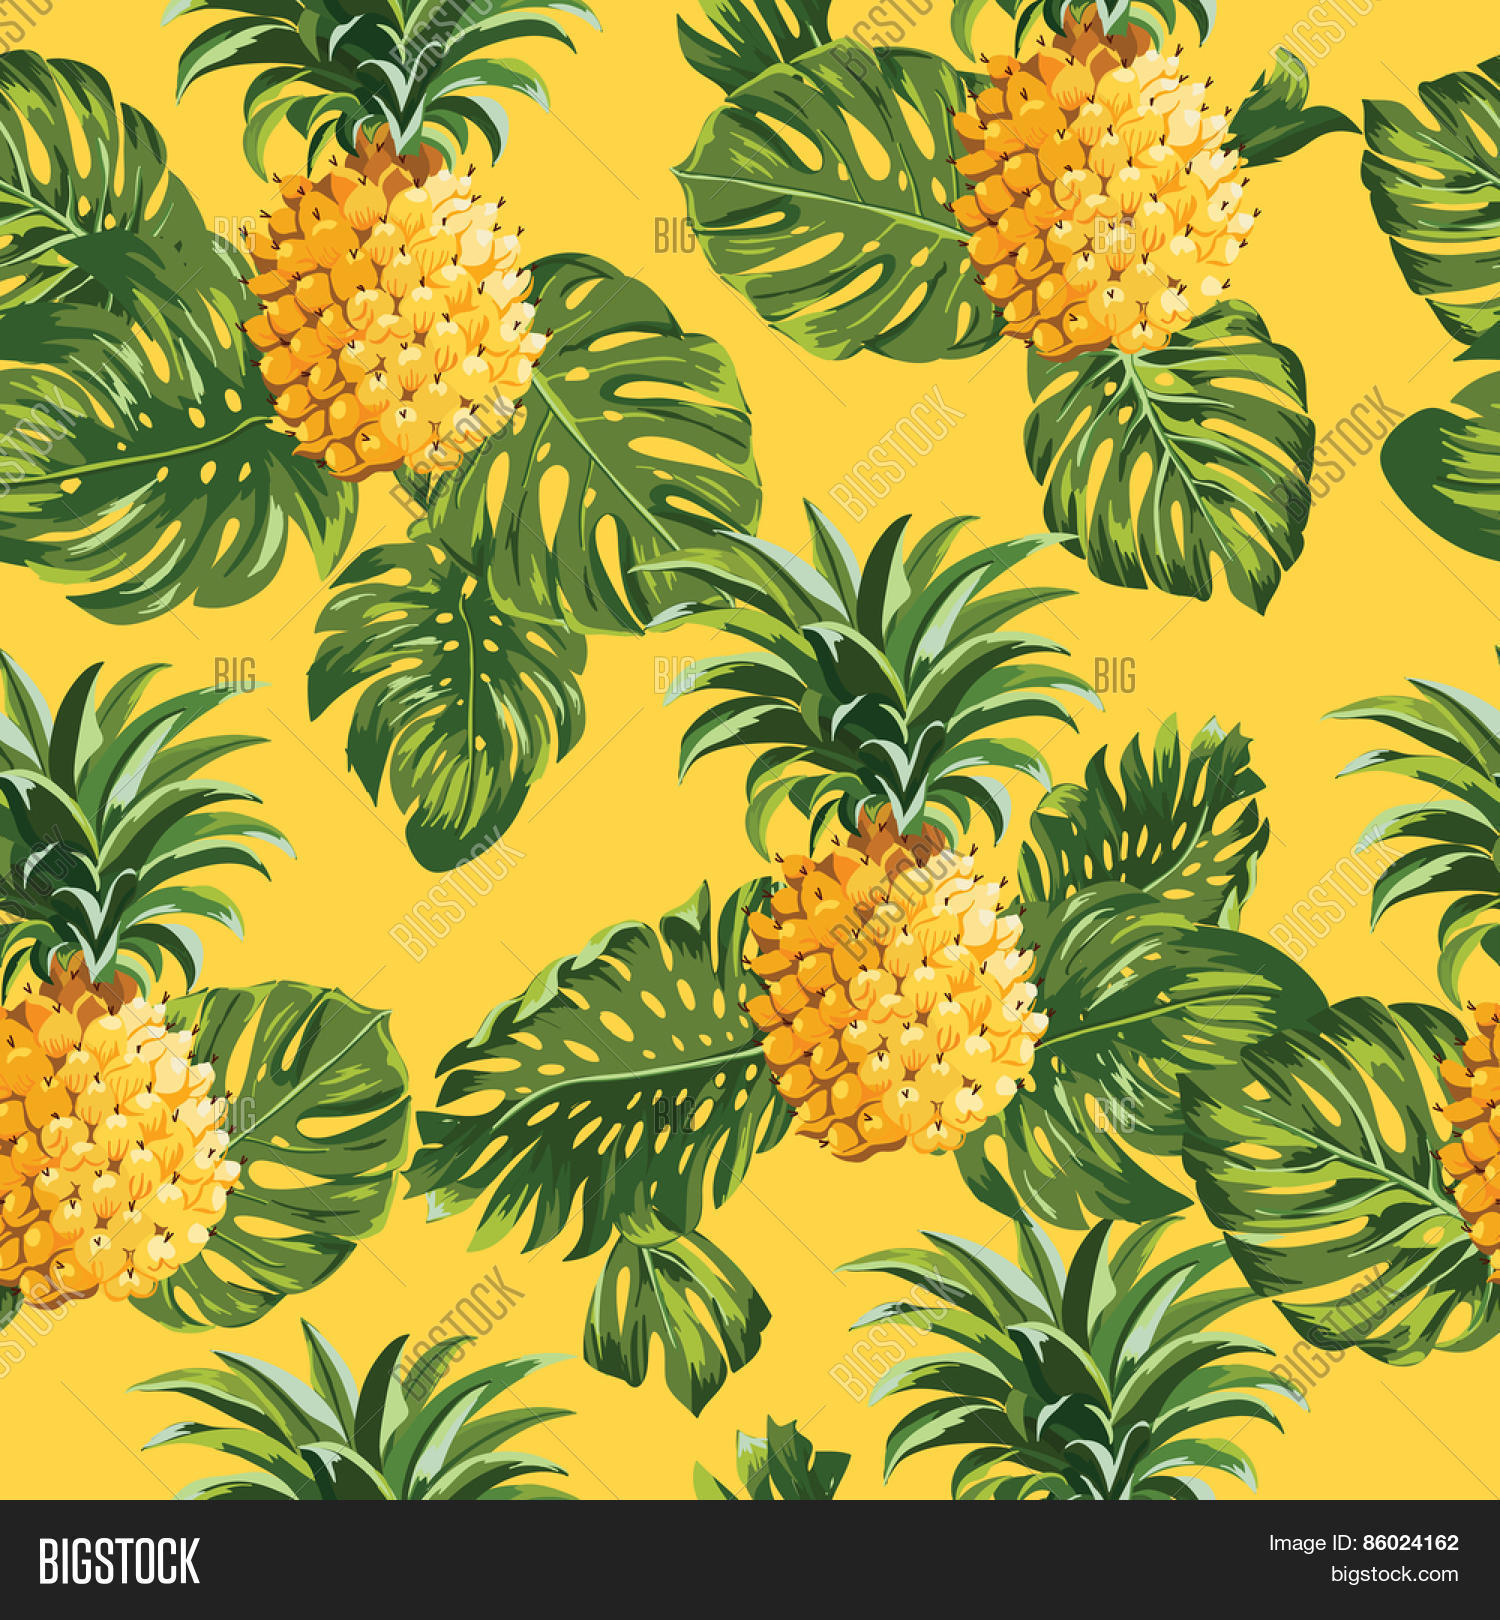 Pineapples Tropical Leaves Vector & Photo | Bigstock